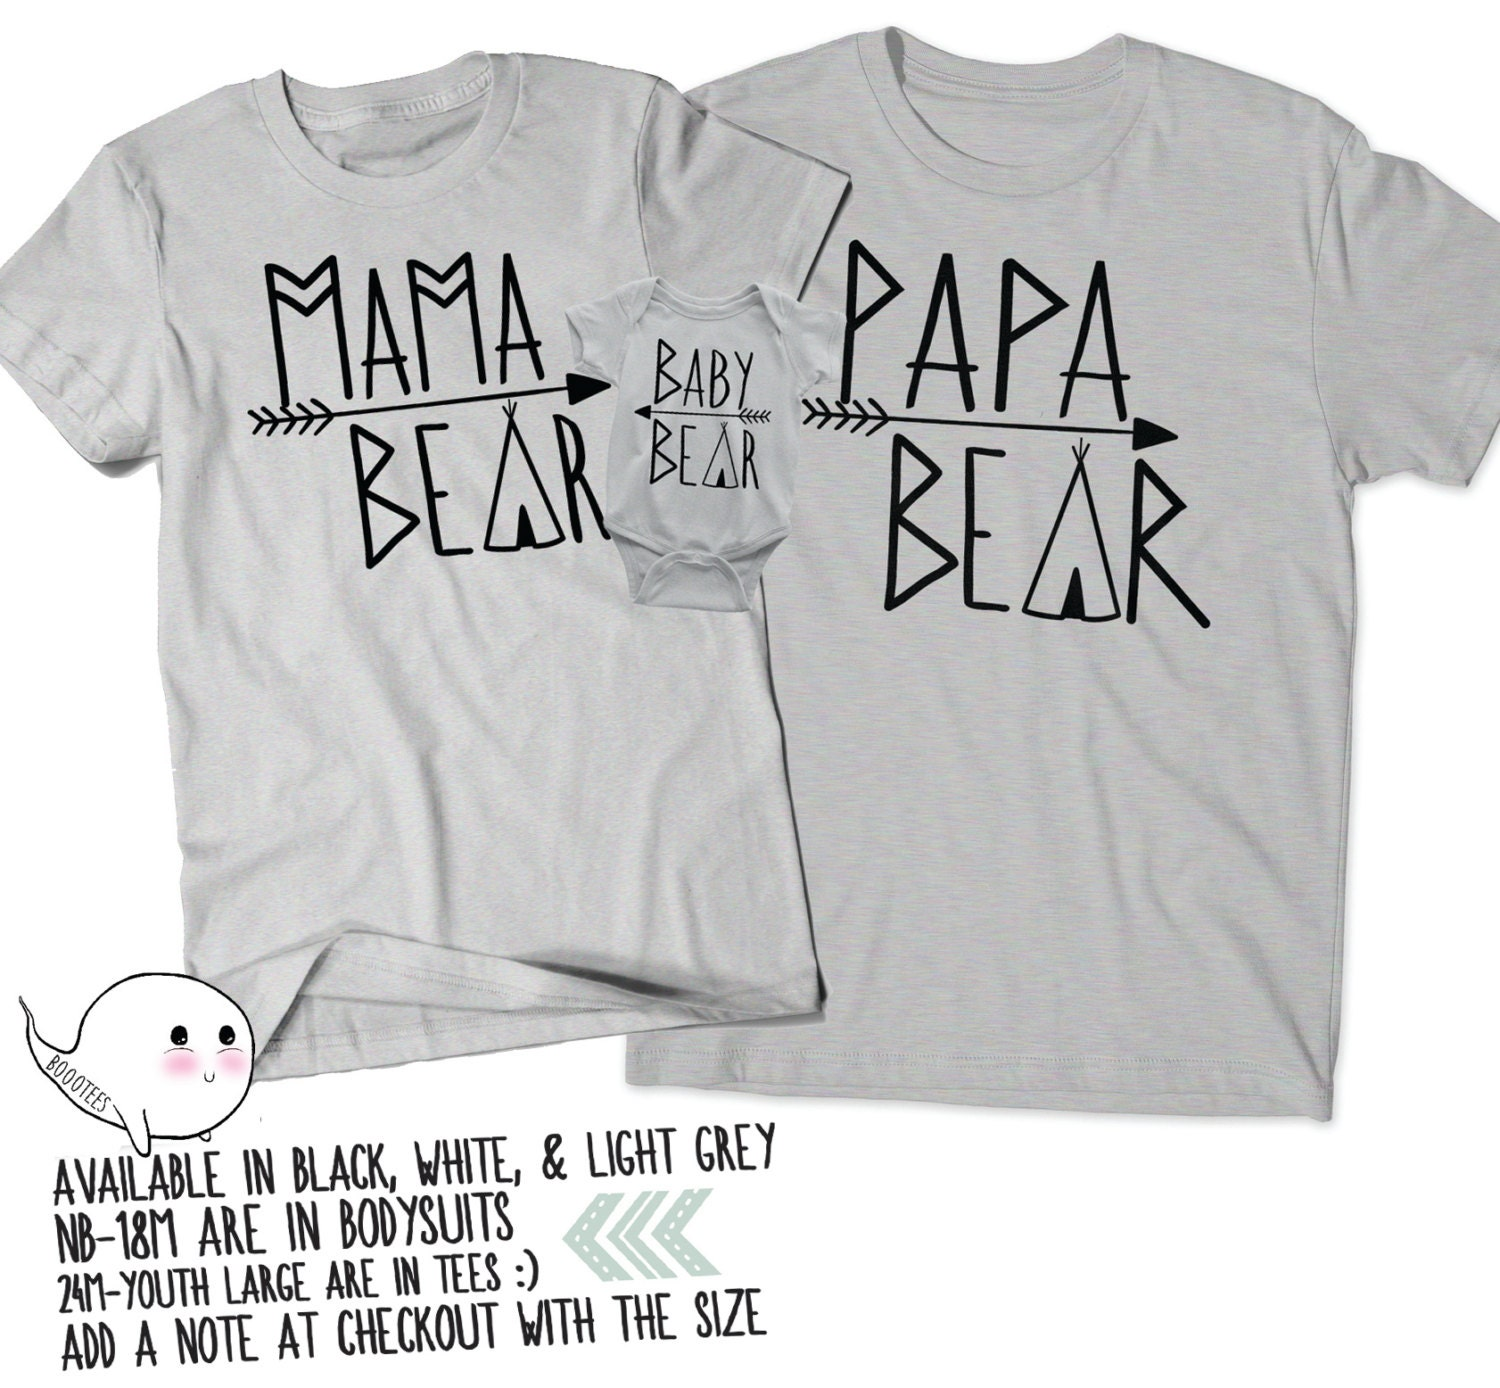 Papa Mama Baby Bear Shirts: Papa Bear Baby Bear Mama Bear Shirt Gifts For Dads Mothers Day